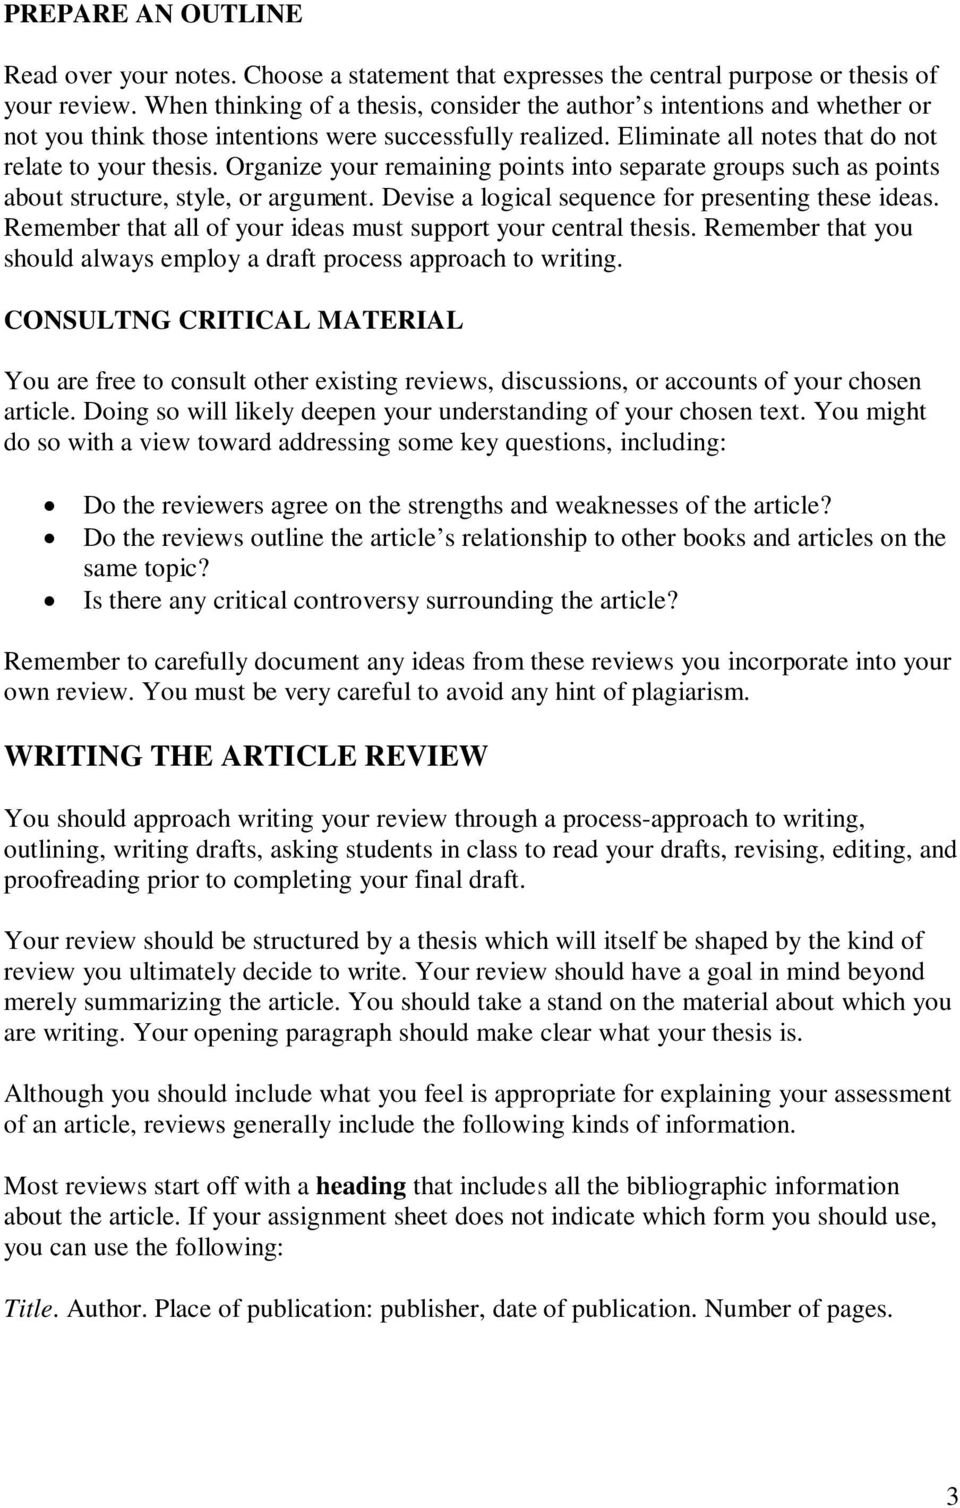 article review form